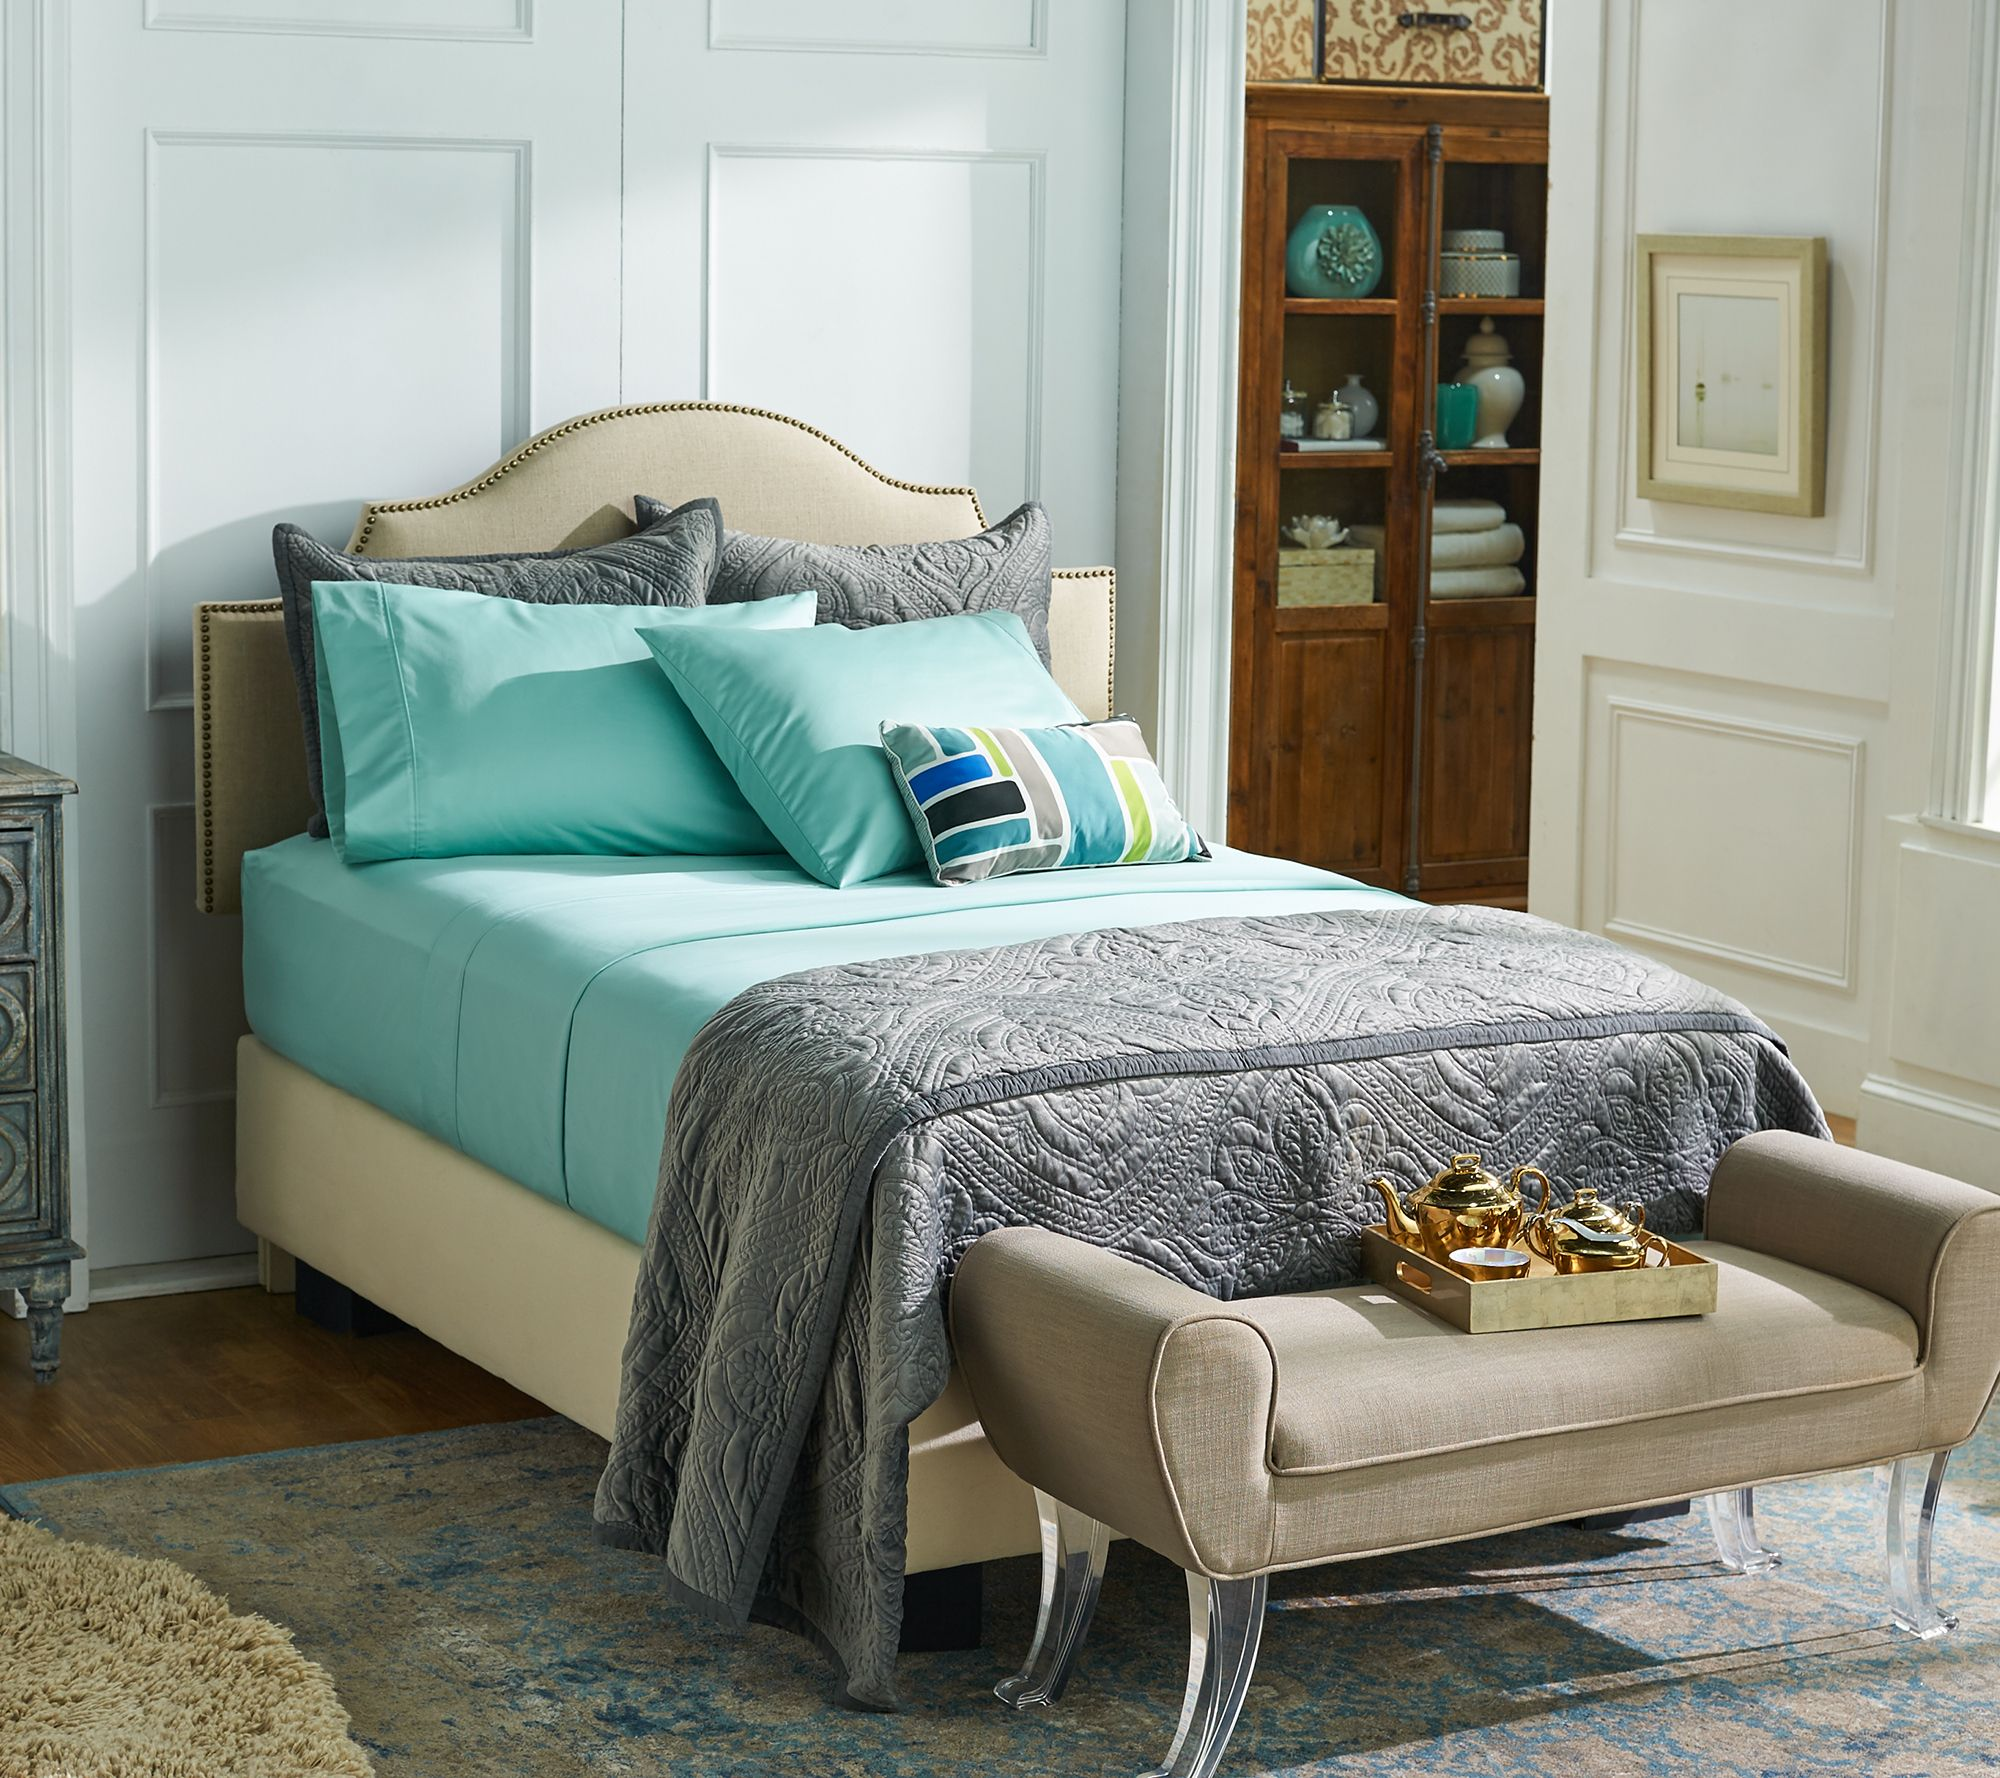 Sheets - Bed Sheets, Sheet Sets — QVC.com